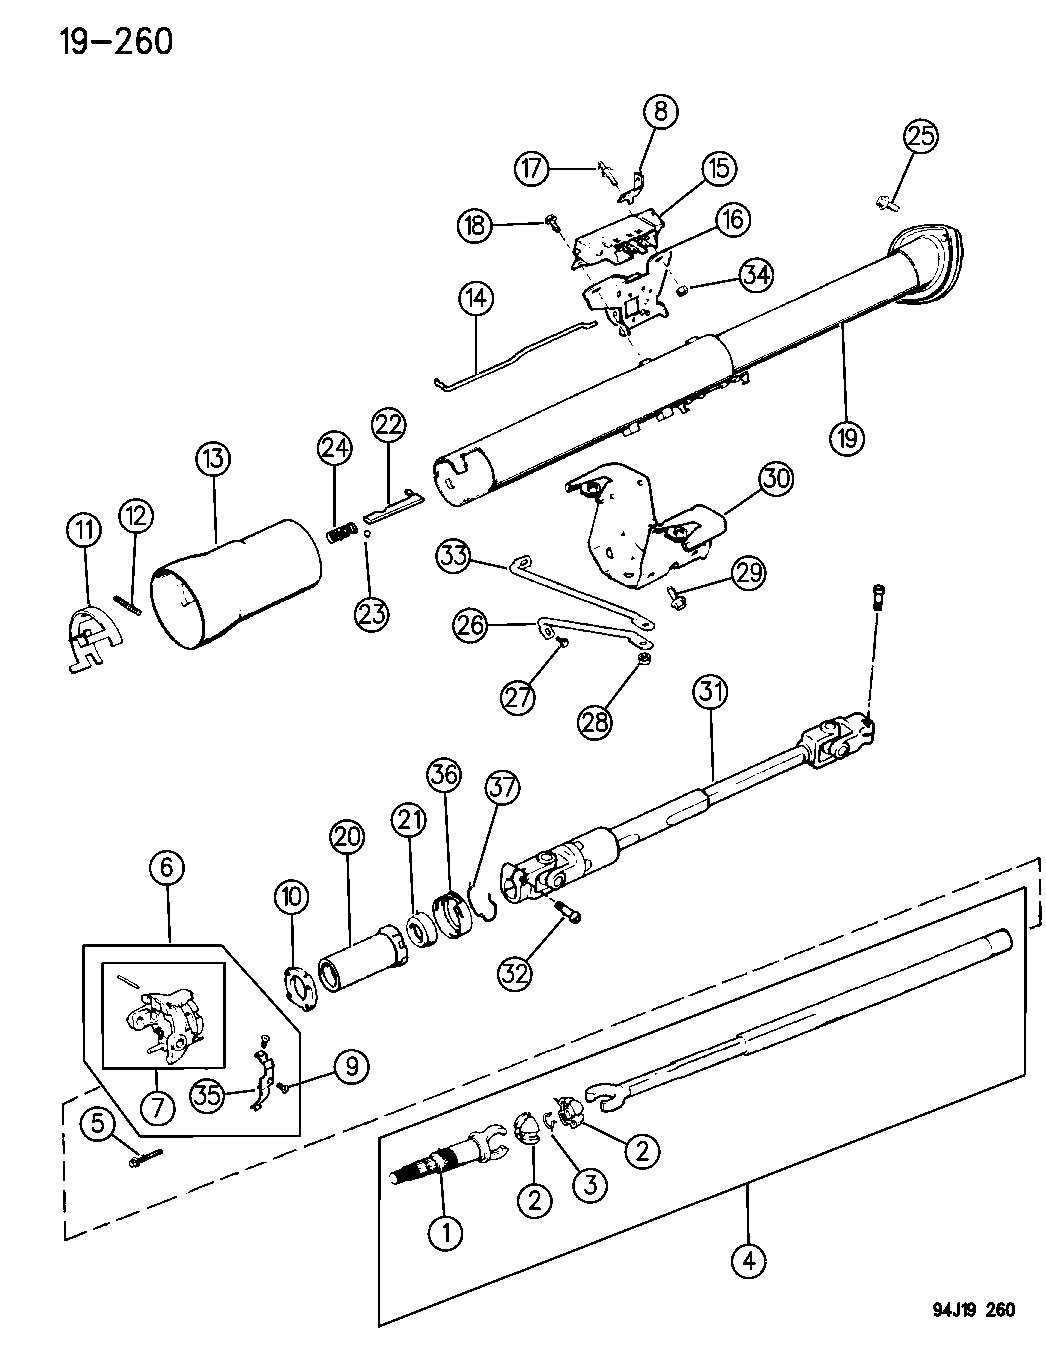 86 Jeep  anche Fuel Filter together with 297870962837374255 moreover Jeep 258 Engine likewise Index in addition Jeep Cj7 Fuse Box. on jeep wagoneer steering column diagram